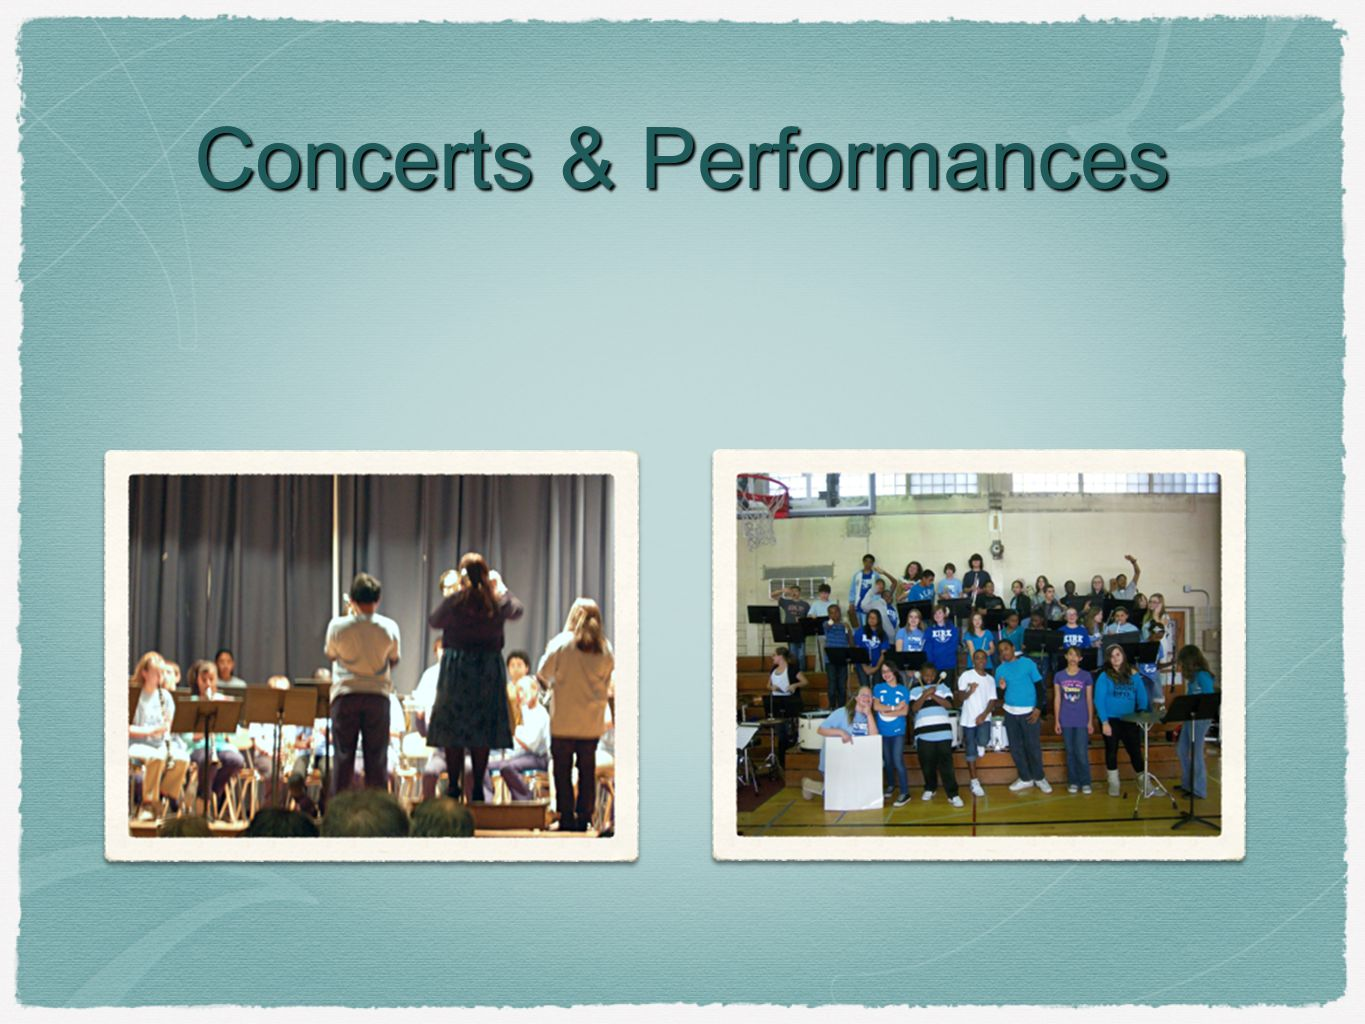 Concerts & Performances